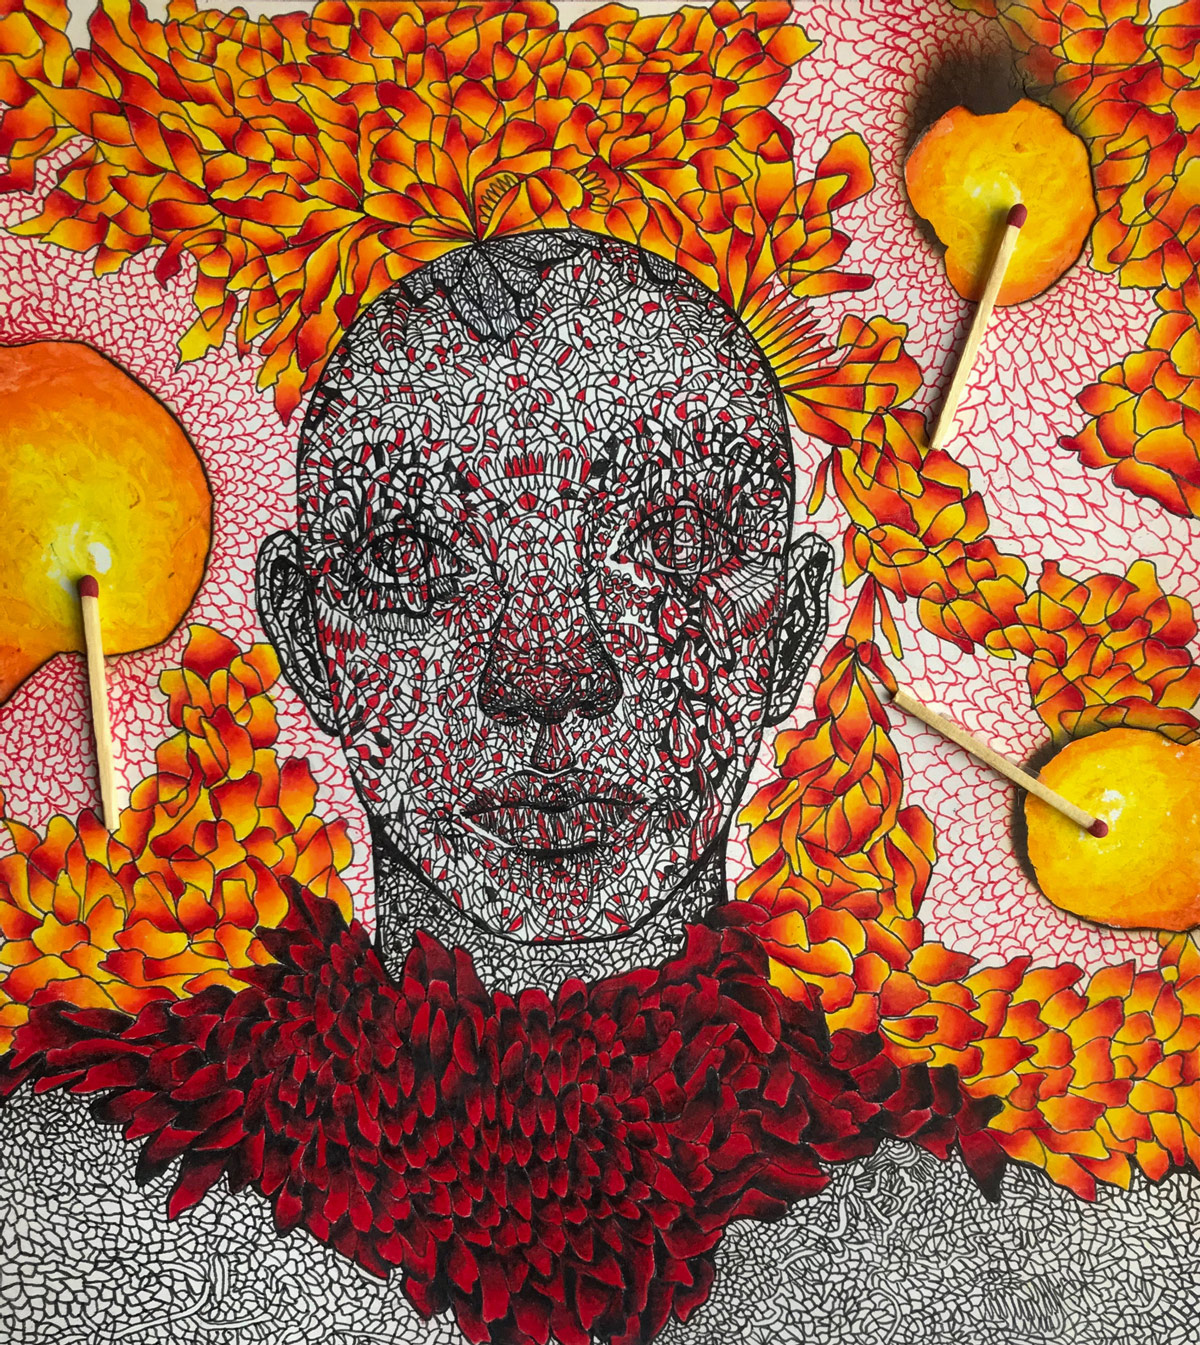 Ink portrait drawn in yellow, red, and orange with matches laid on top